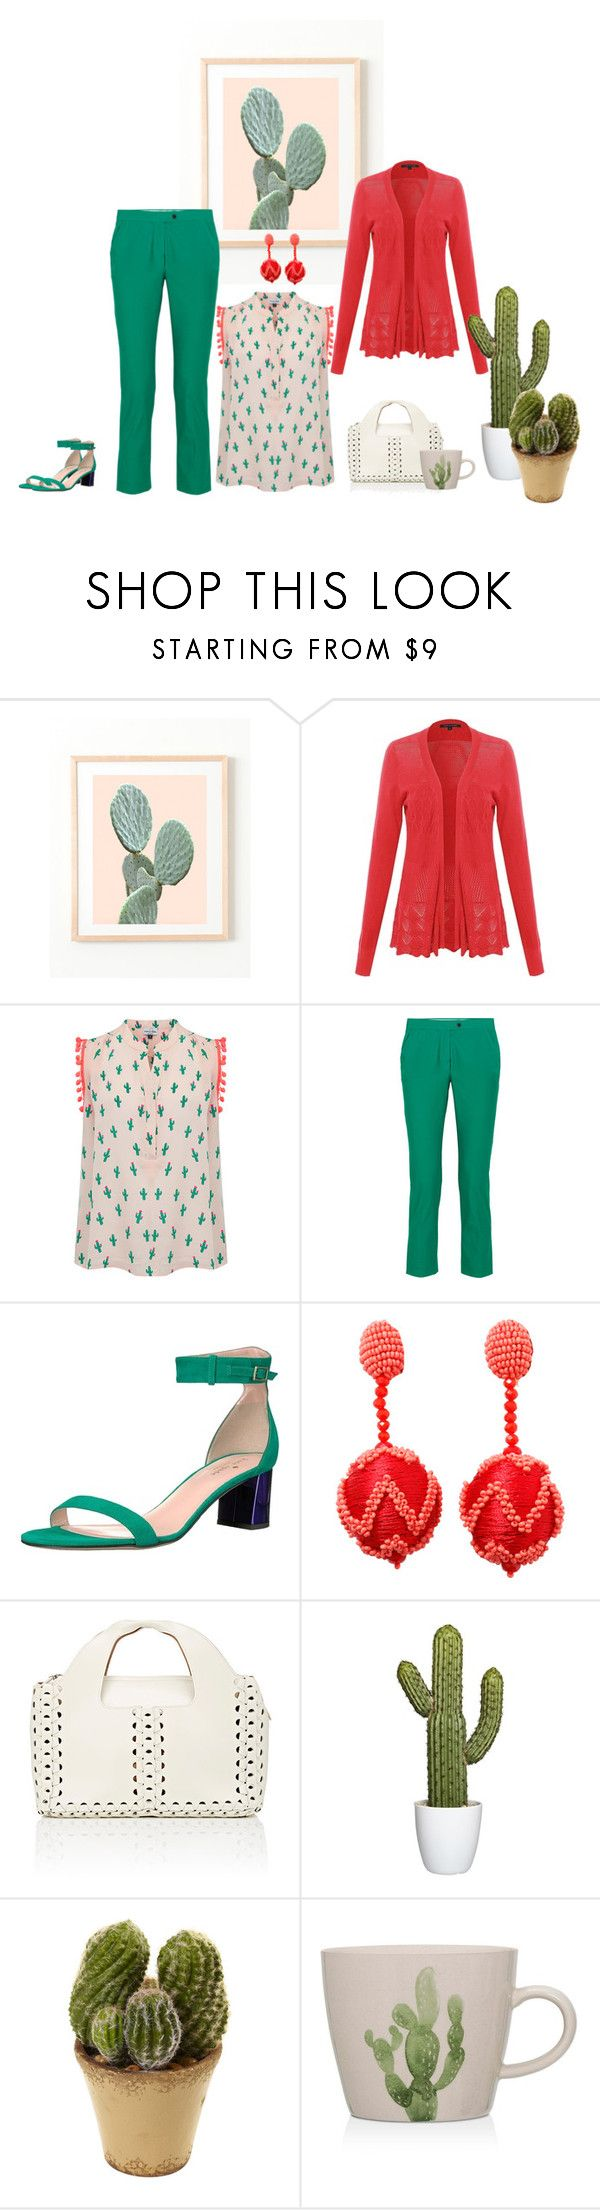 """""""Untitled #7527"""" by msdanasue ❤ liked on Polyvore featuring Mercy Delta, Joseph, Kate Spade, Oscar de la Renta, The Row and Bloomingville"""